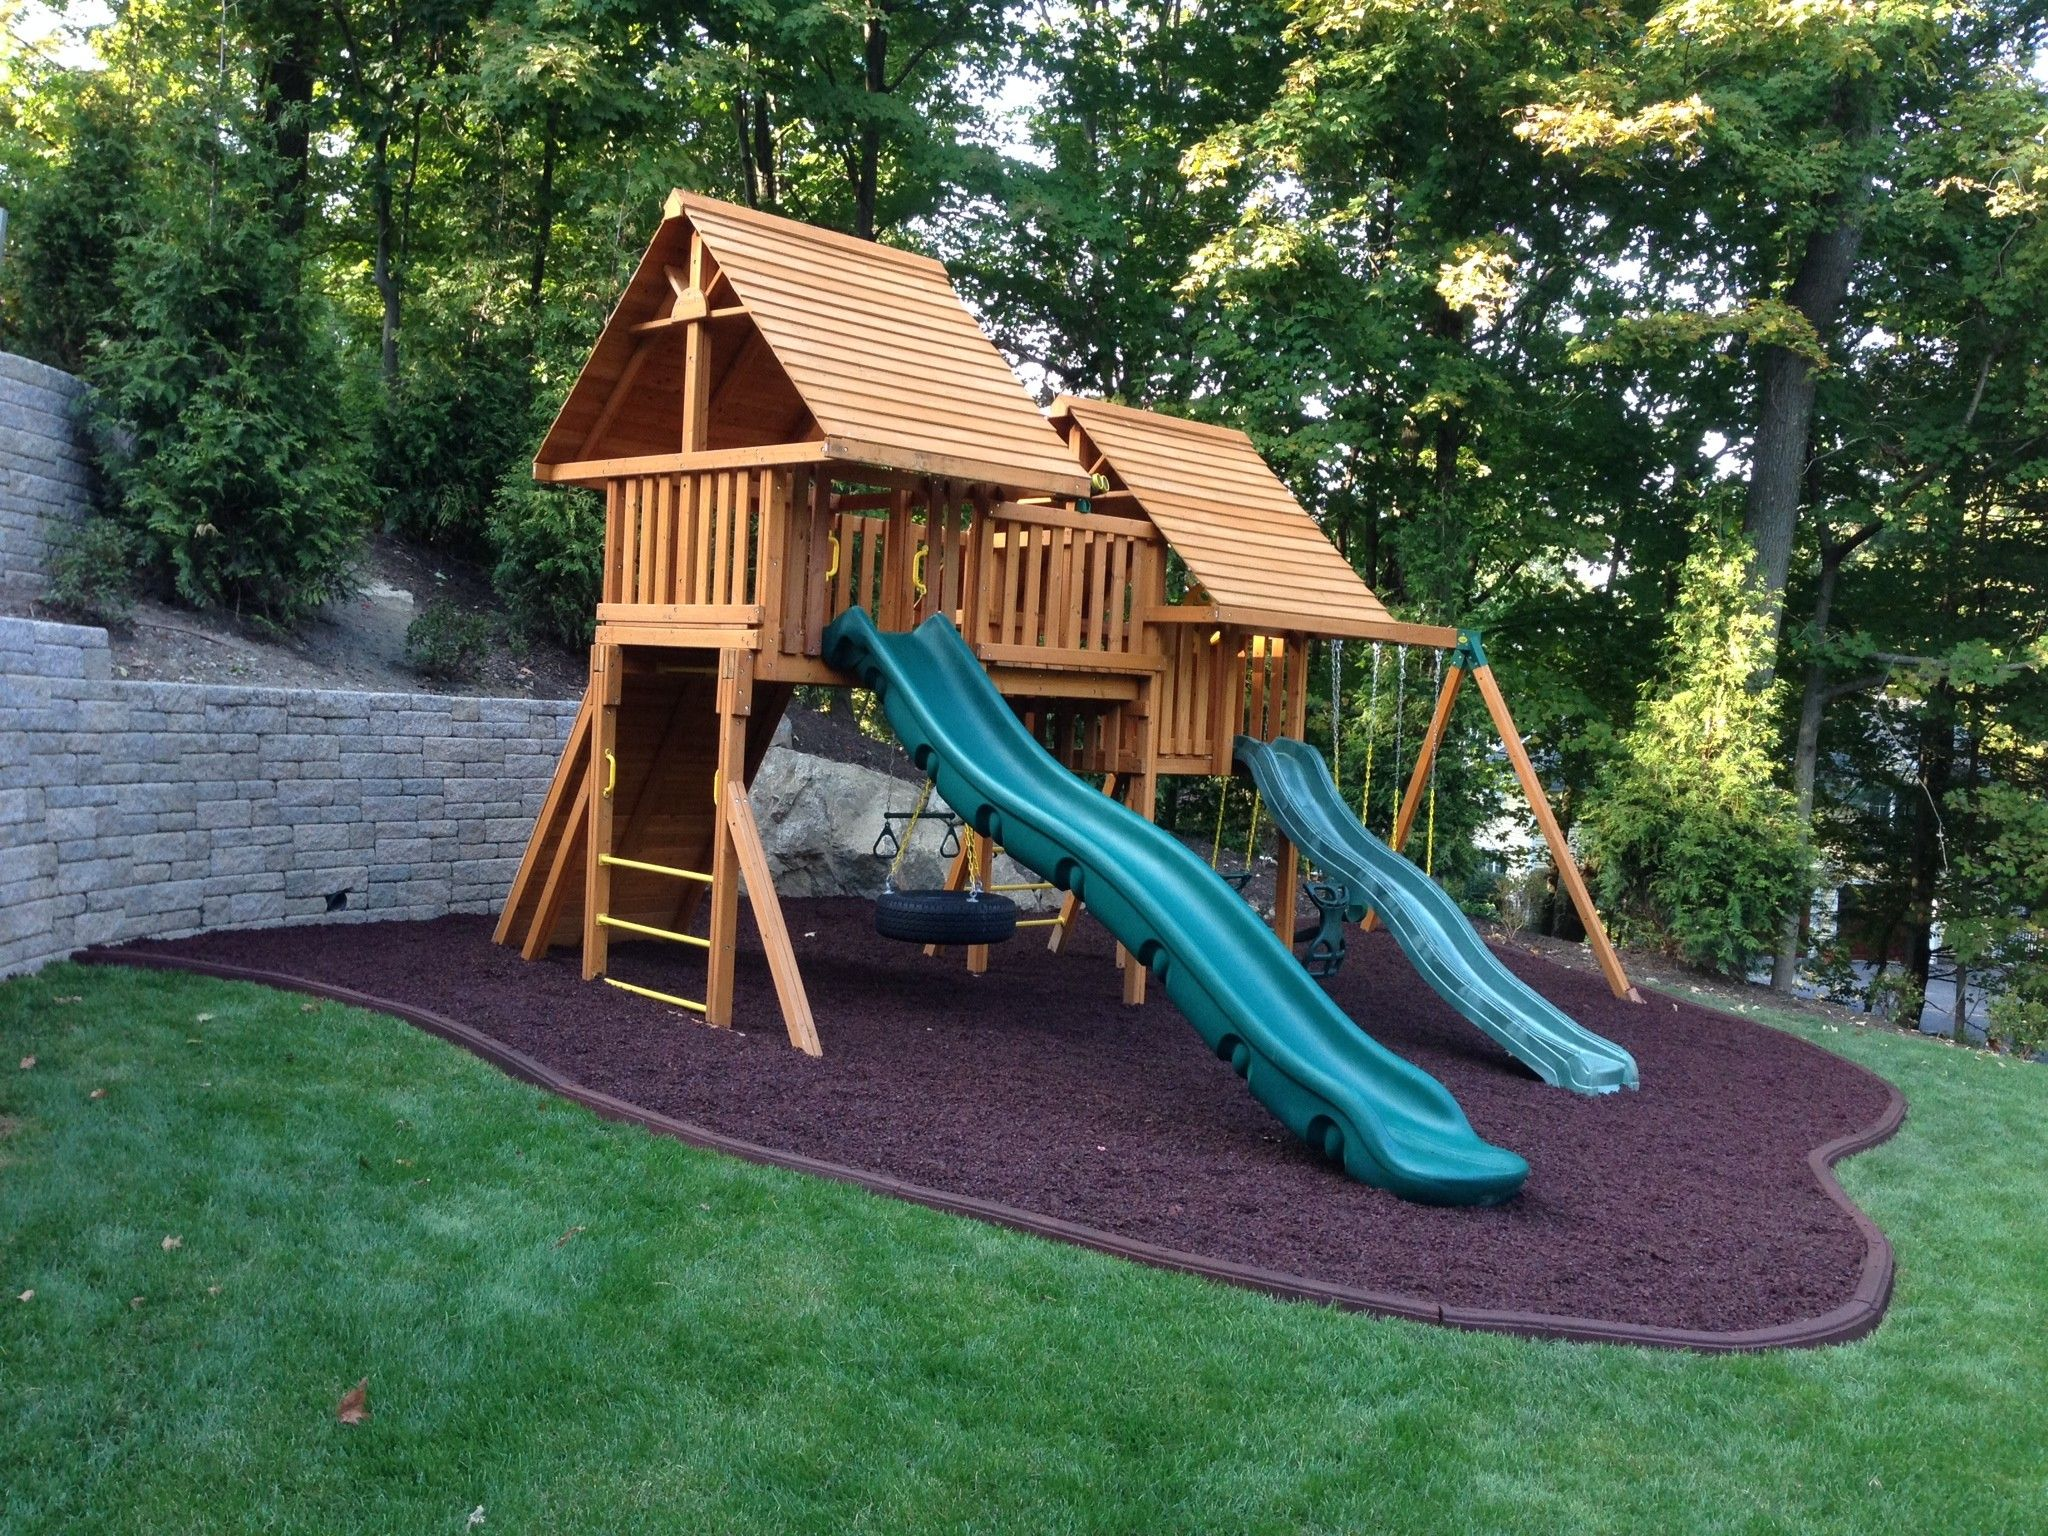 Fantasy Swing Set With Wood Roofs 14 Scoop Slide And Rubber Mulch